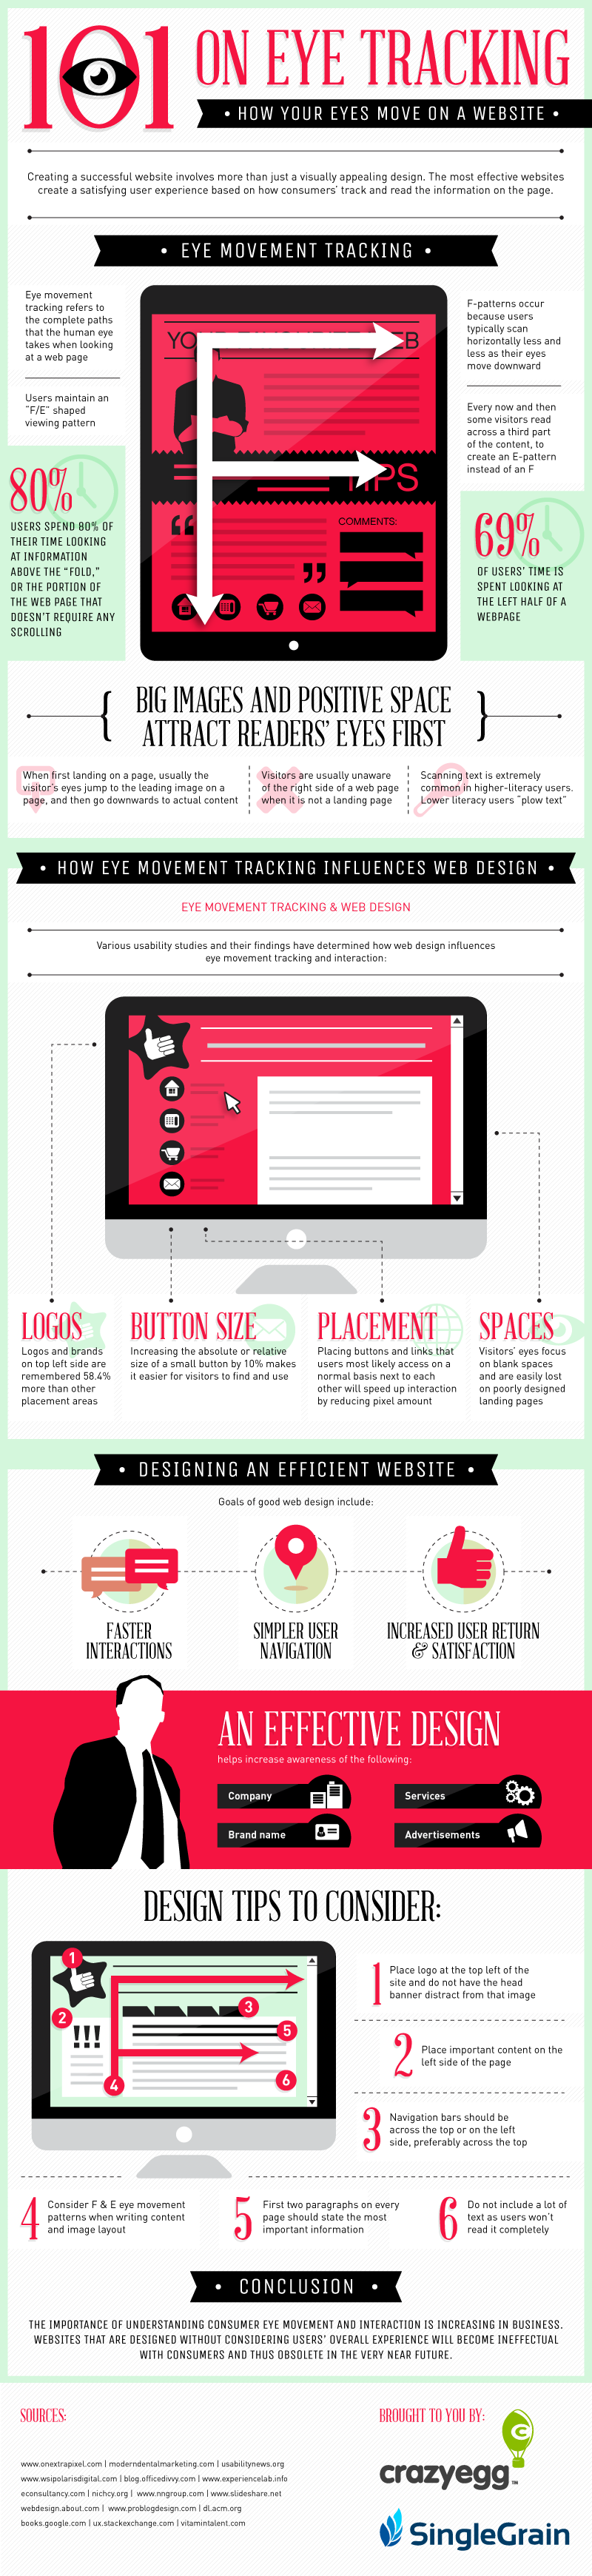 Eye-tracking-how-your-eyes-move-on-a-website-infographic